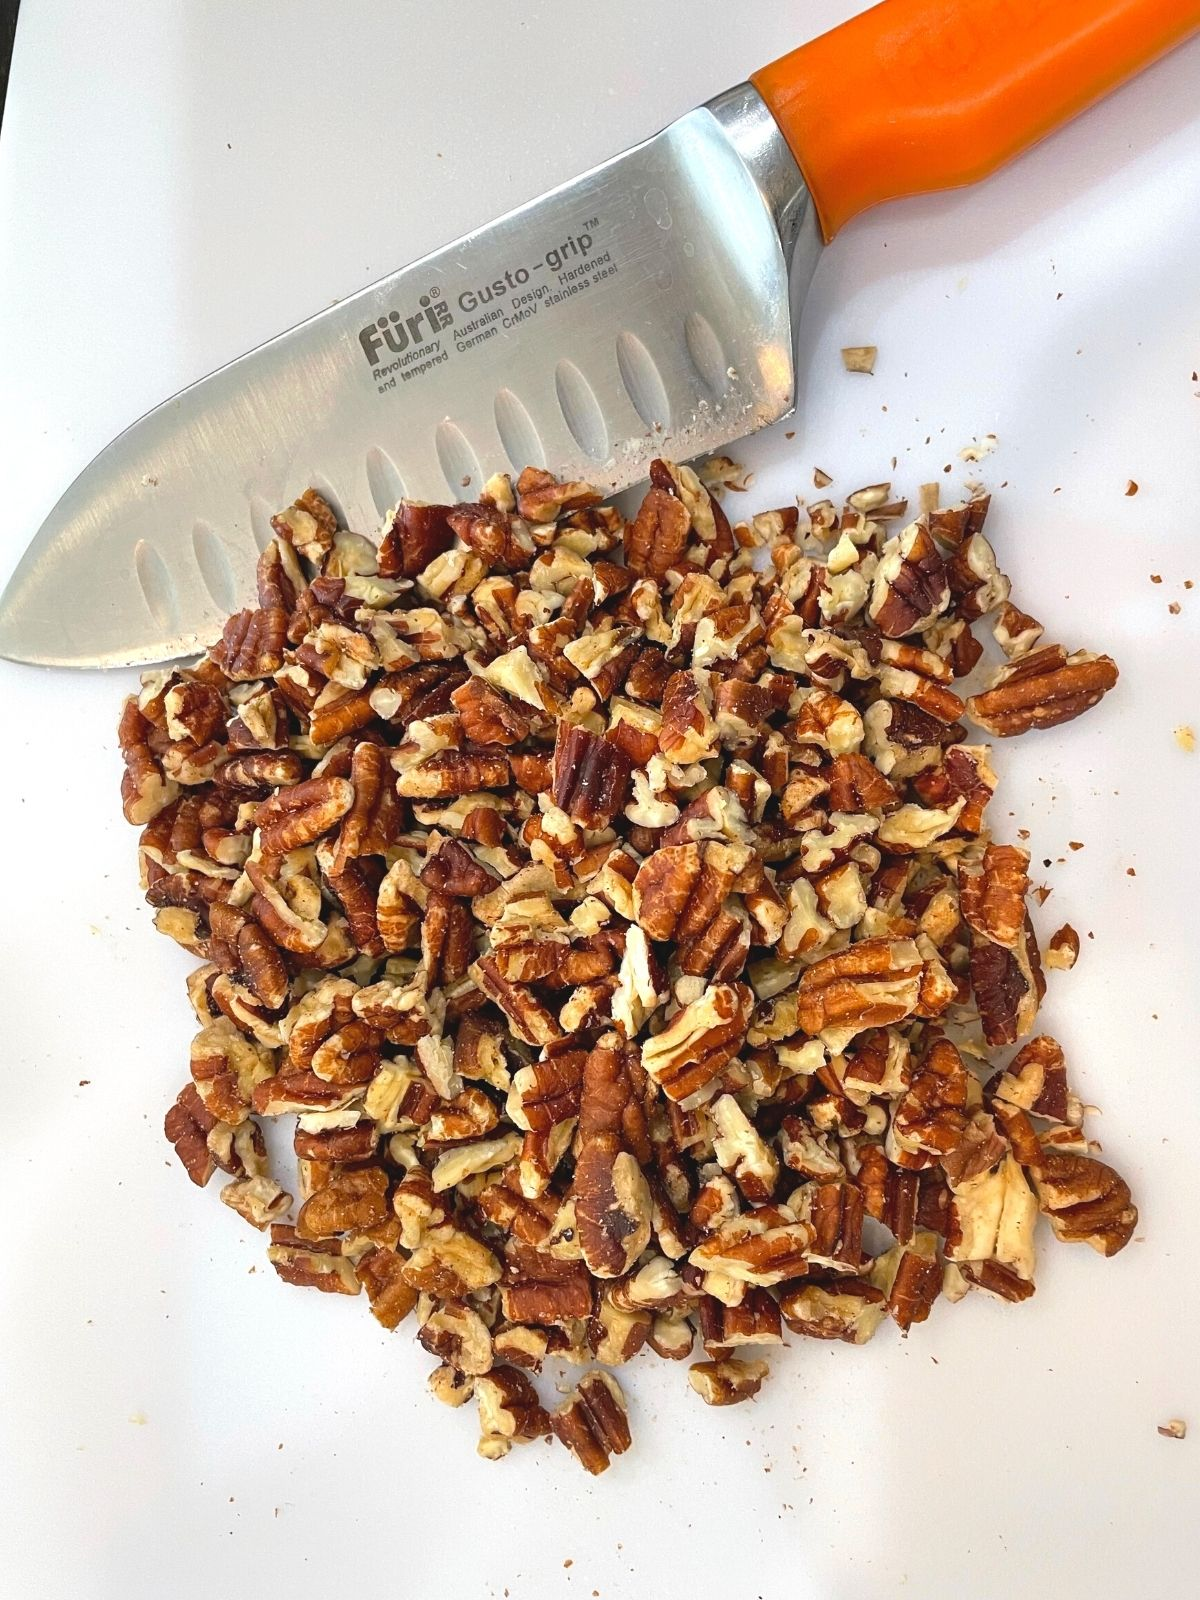 Chopped pecans on a cutting board with a knife.